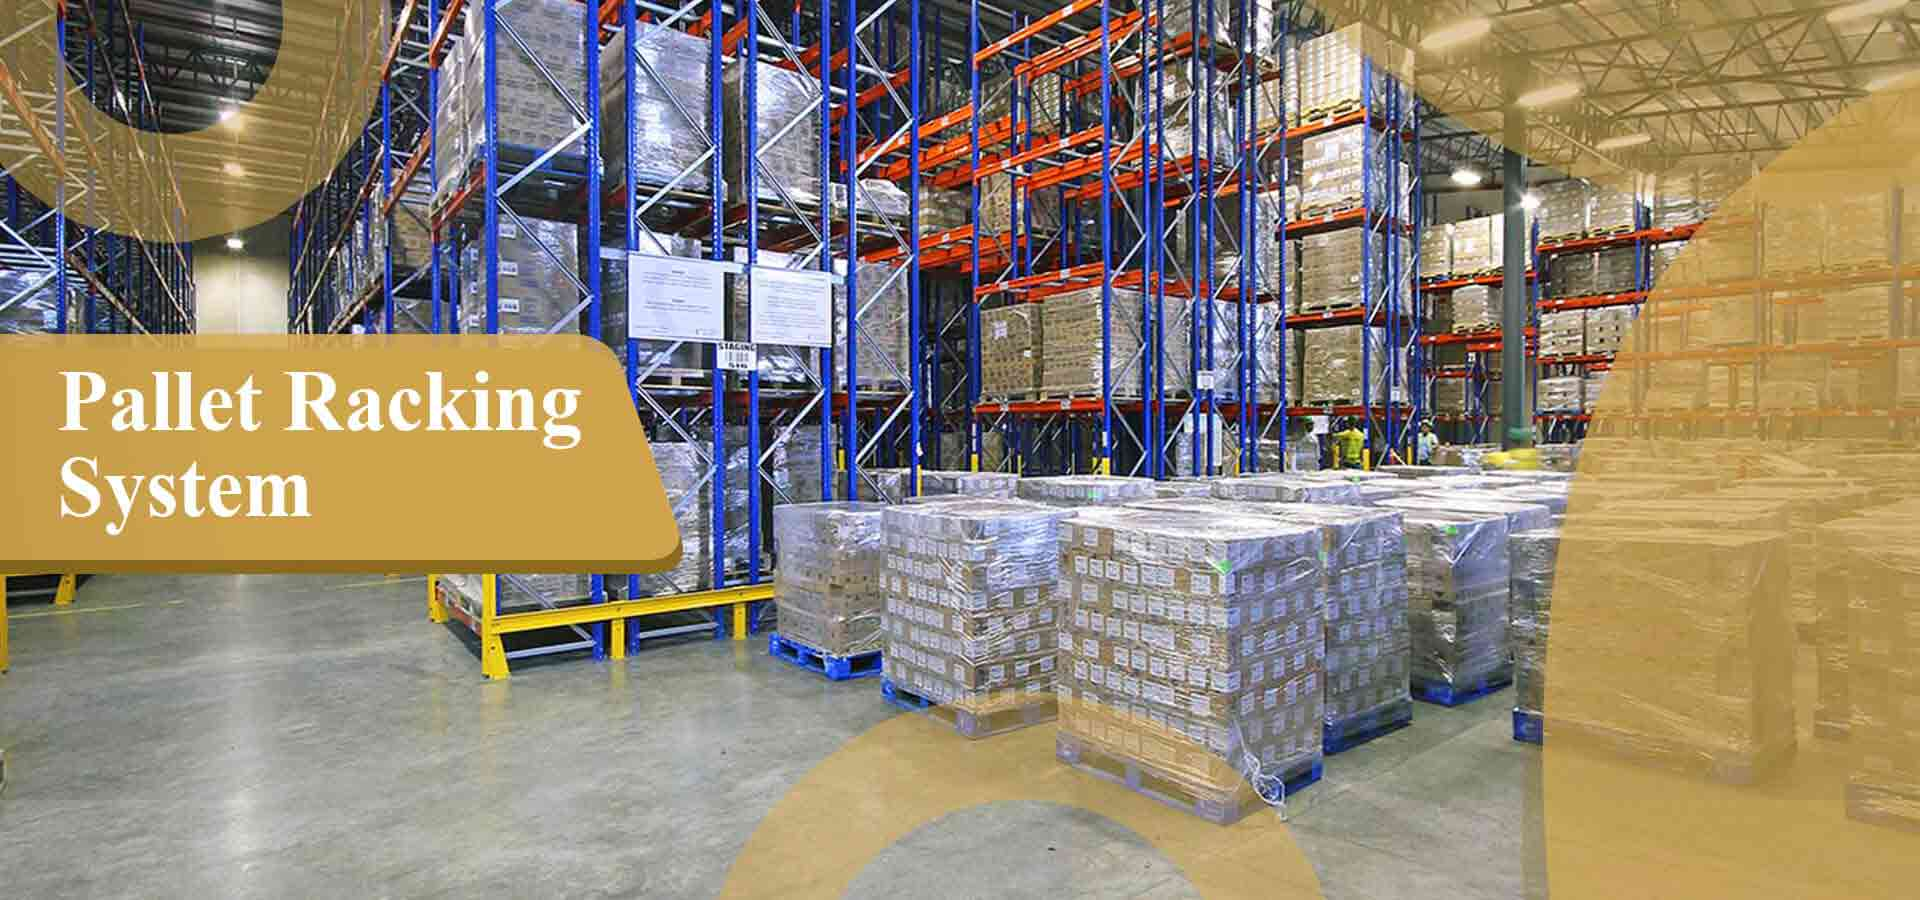 Pallet Racking System In Gummagatta